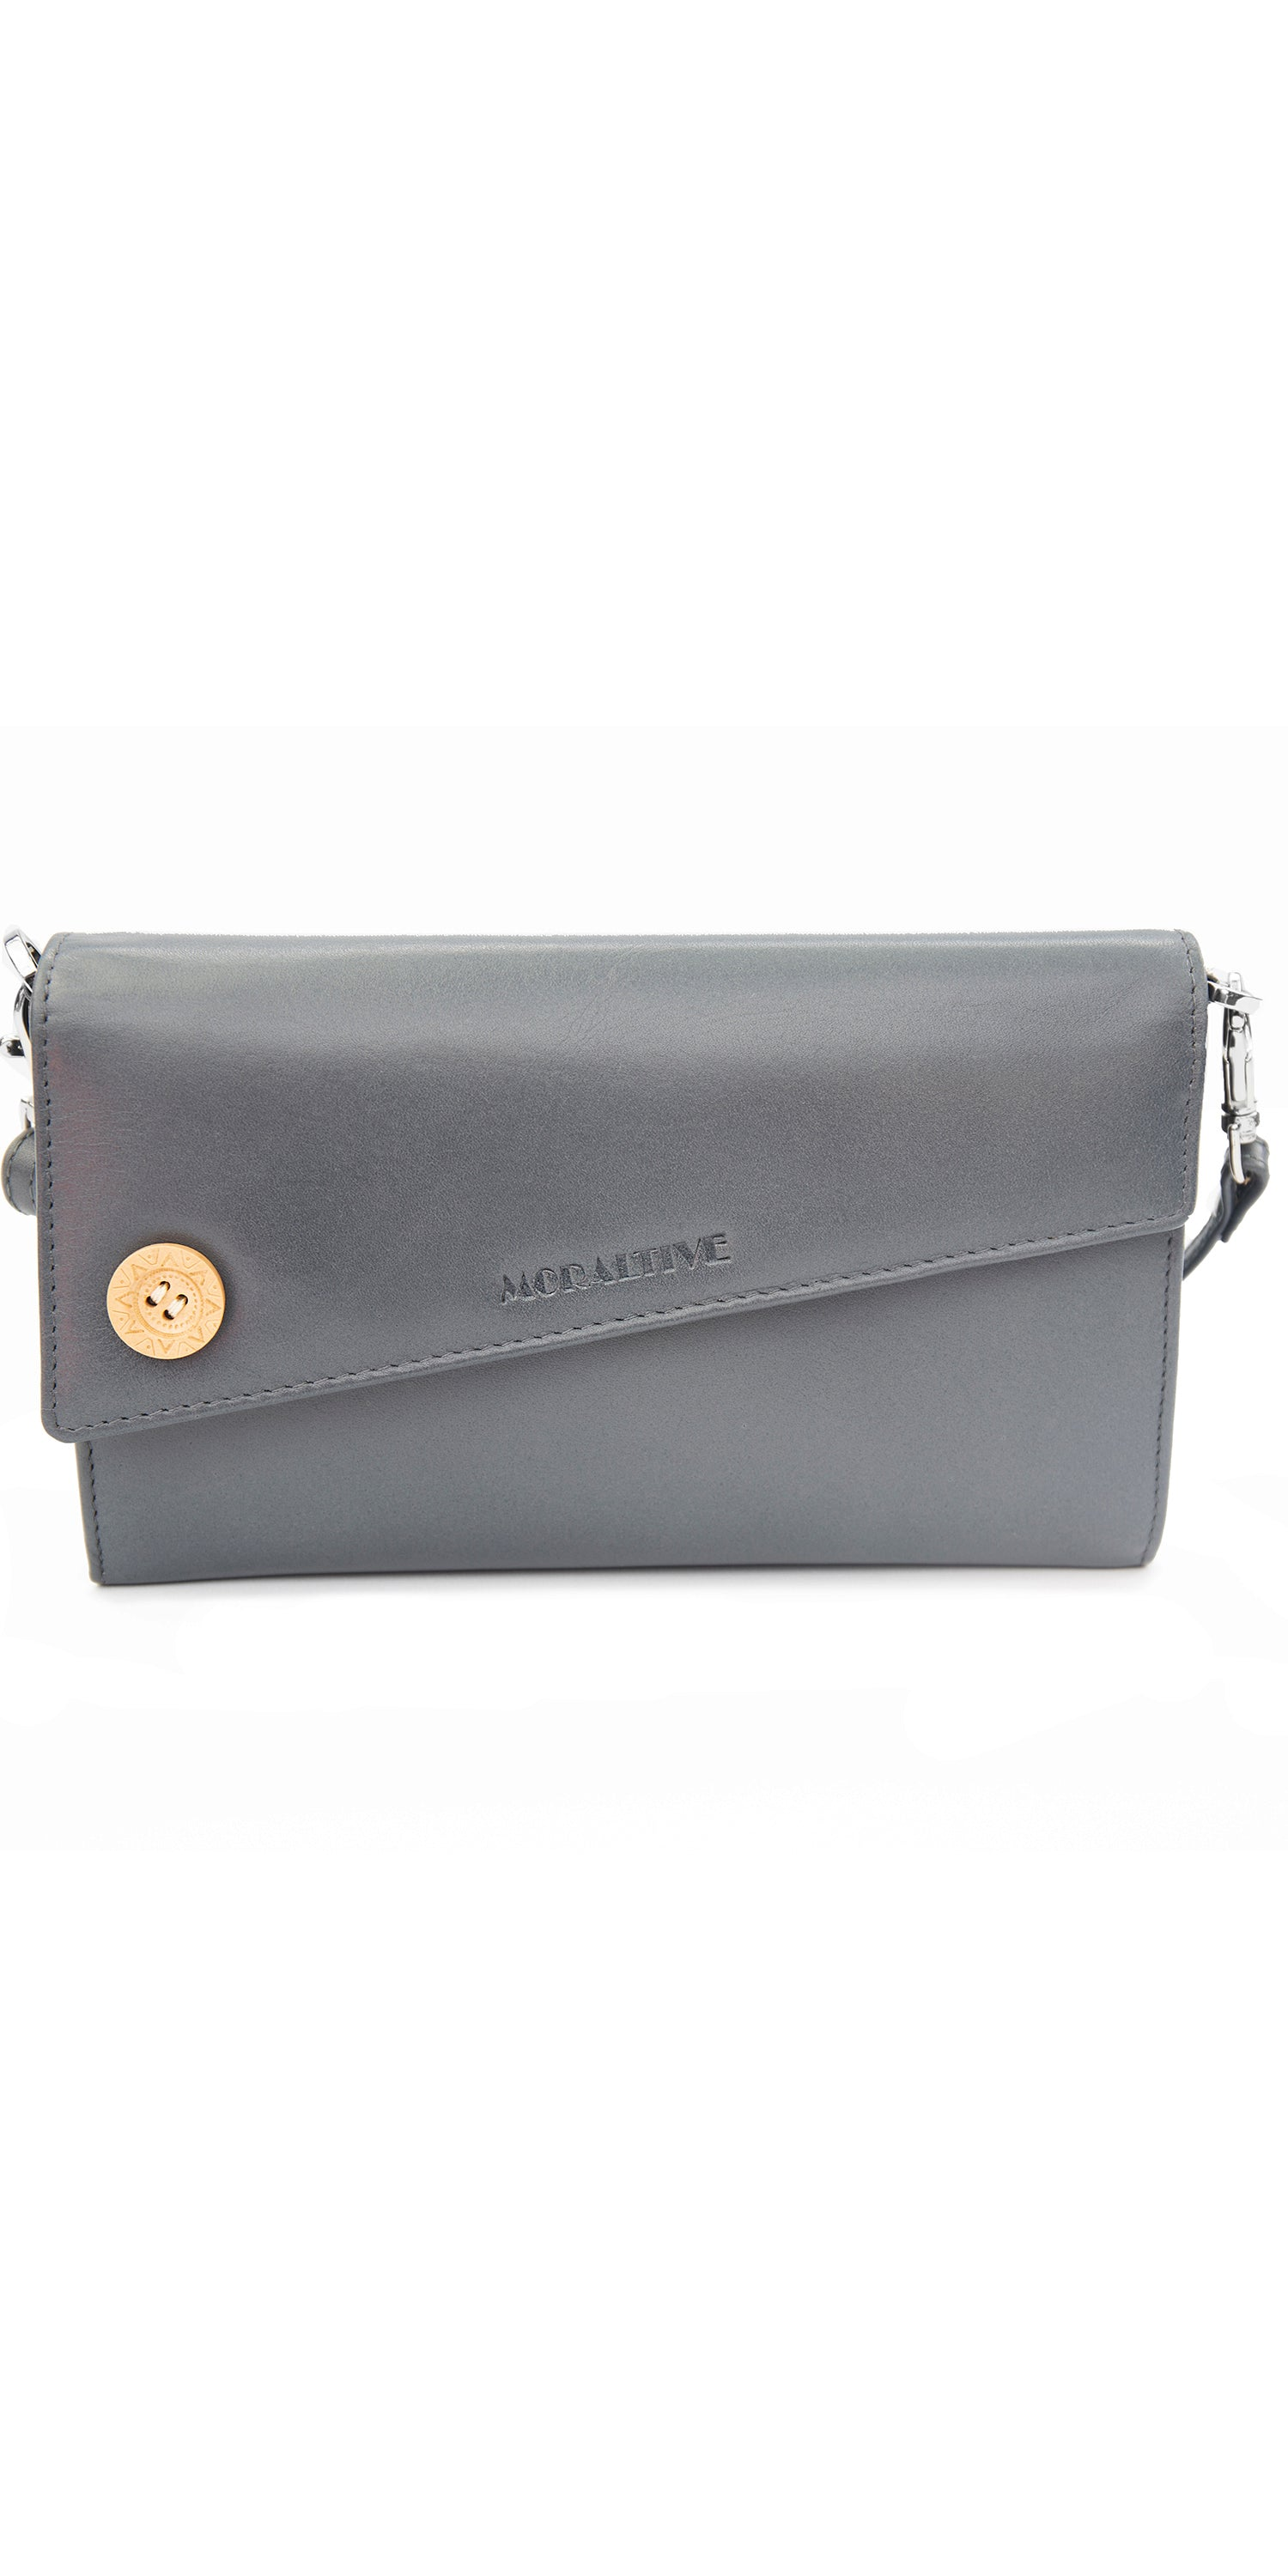 Moraltive Clutch Wallet Grey